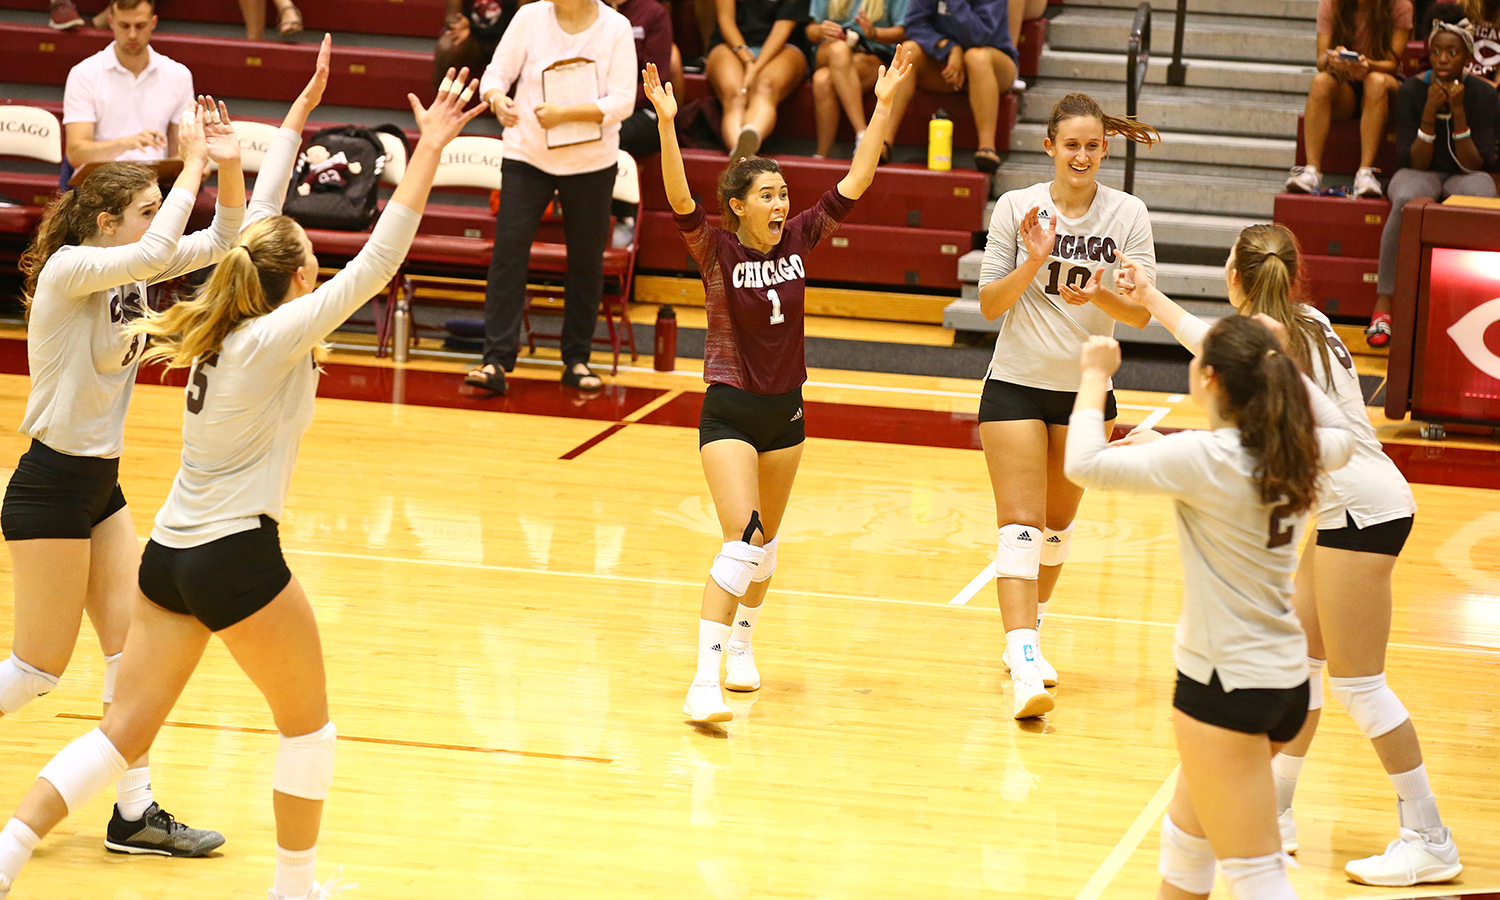 ON TOP: #3 UChicago Volleyball Beats #1 Emory to Claim UAA Regular-Season Title